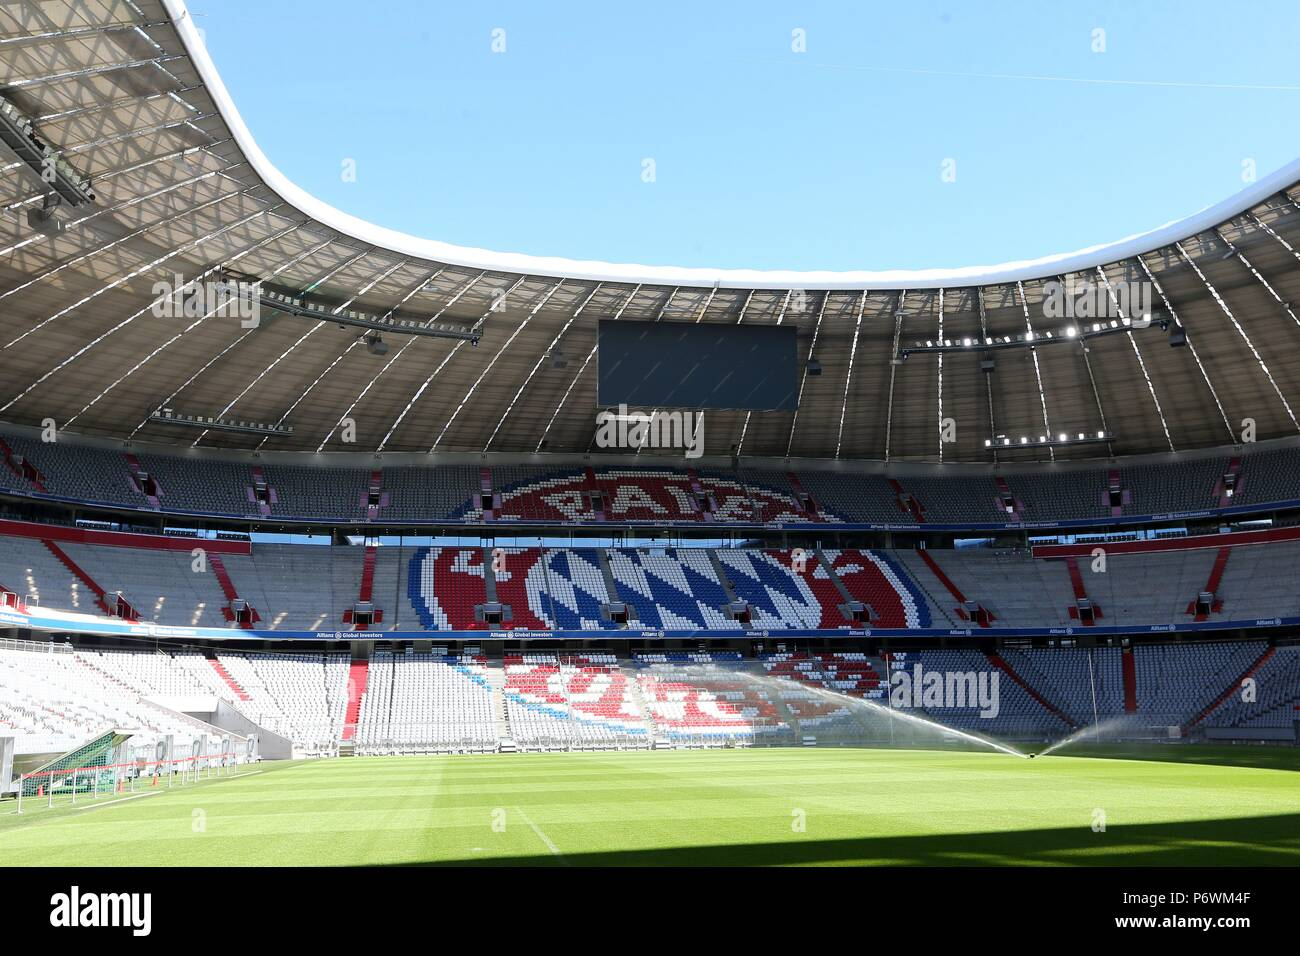 Olympic Stadium Munich: Impressive tent-style roof made of ...